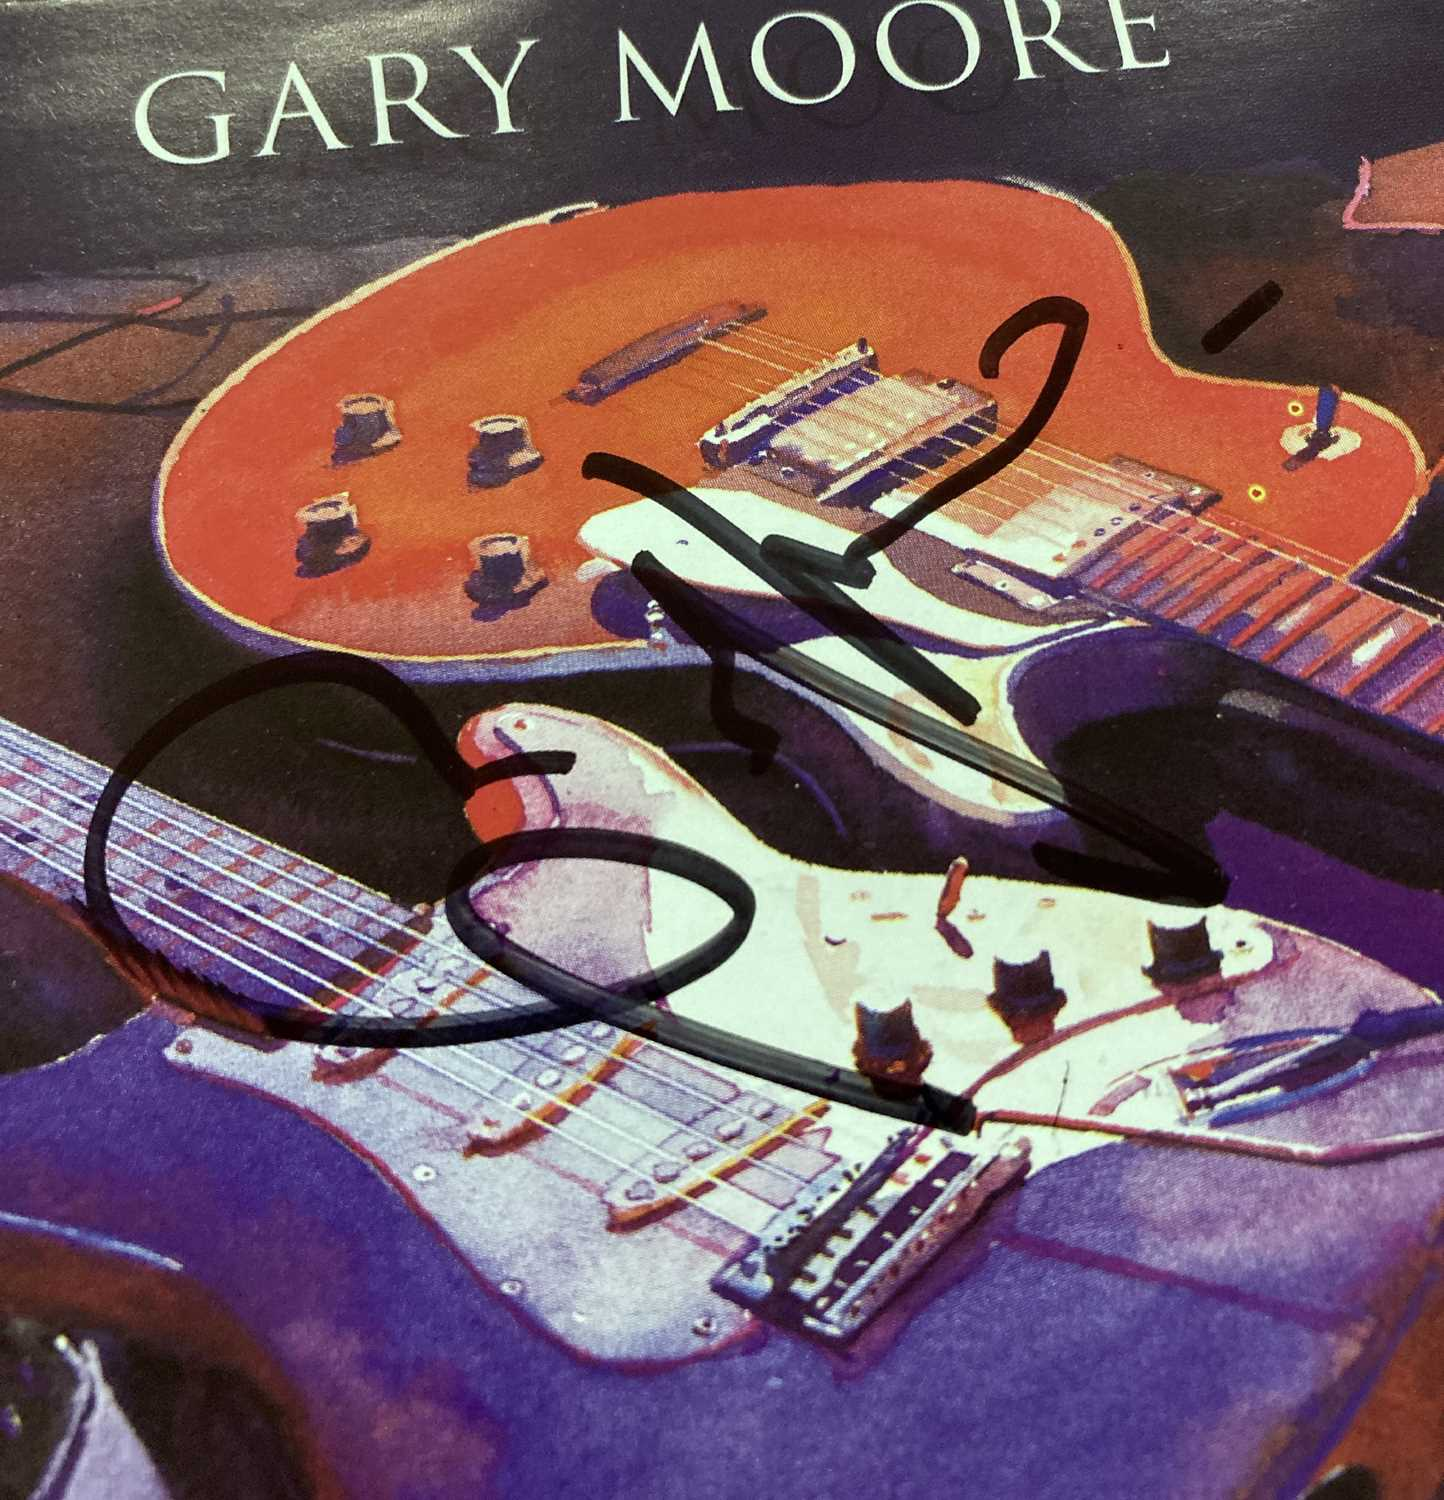 GARY MOORE - SIGNED CD COVERS. - Image 3 of 3